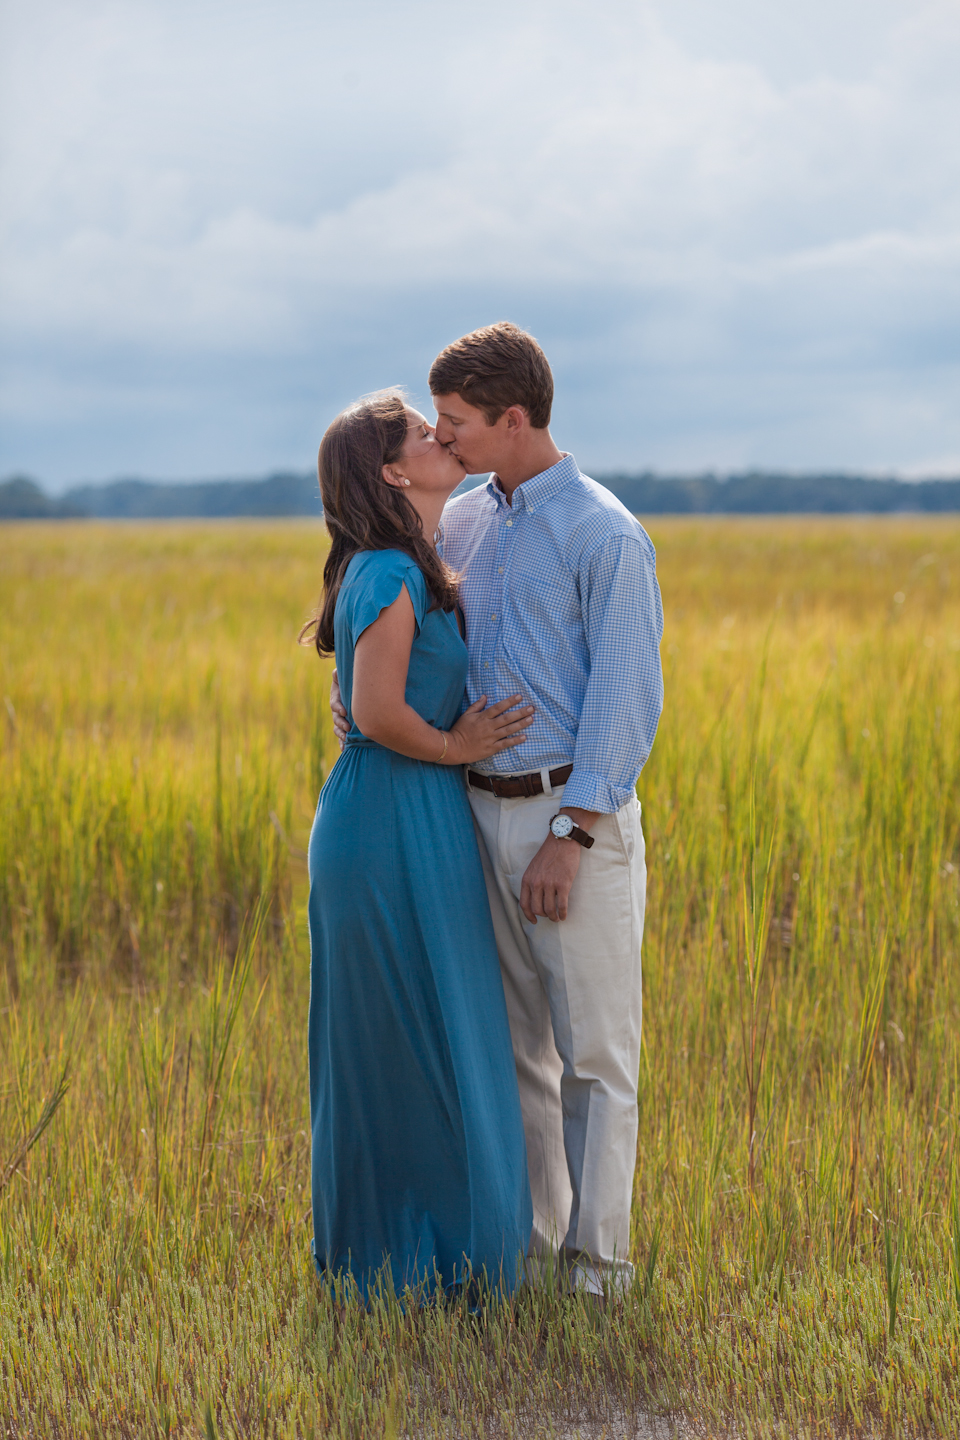 savannahweddingphotographerengagementphotographersavannahlowcountry8.jpg